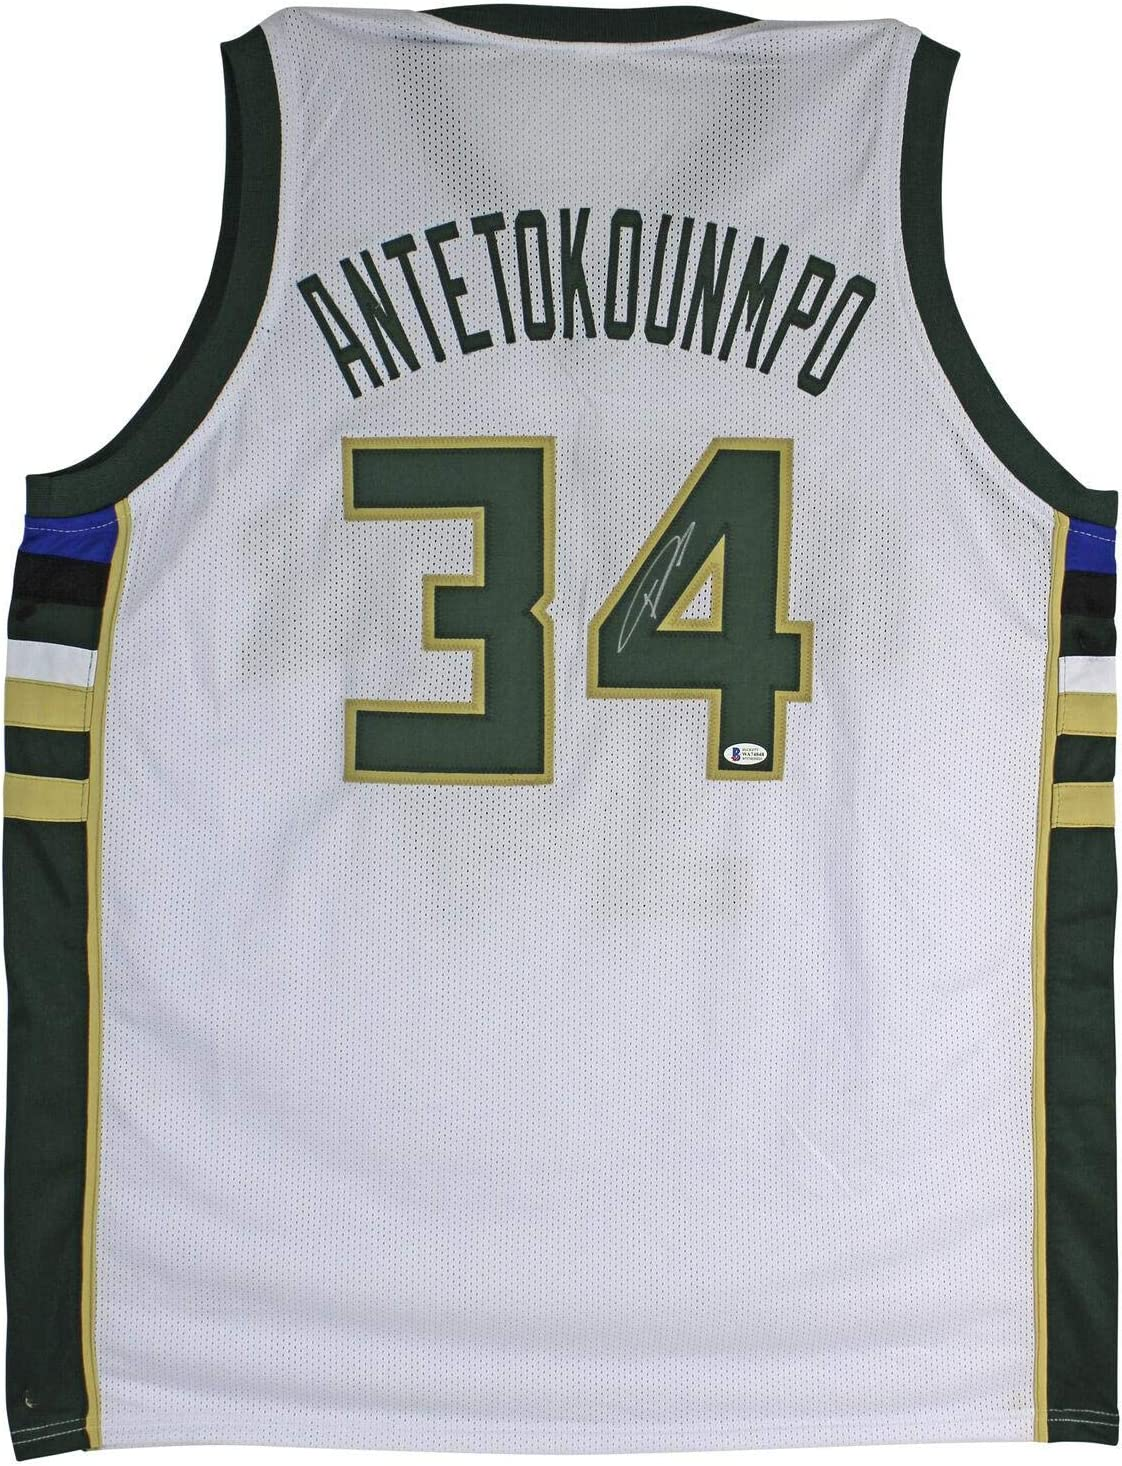 Bucks Giannis Antetokounmpo Signed White Jersey BAS Witnessed - Autographed NBA Jerseys